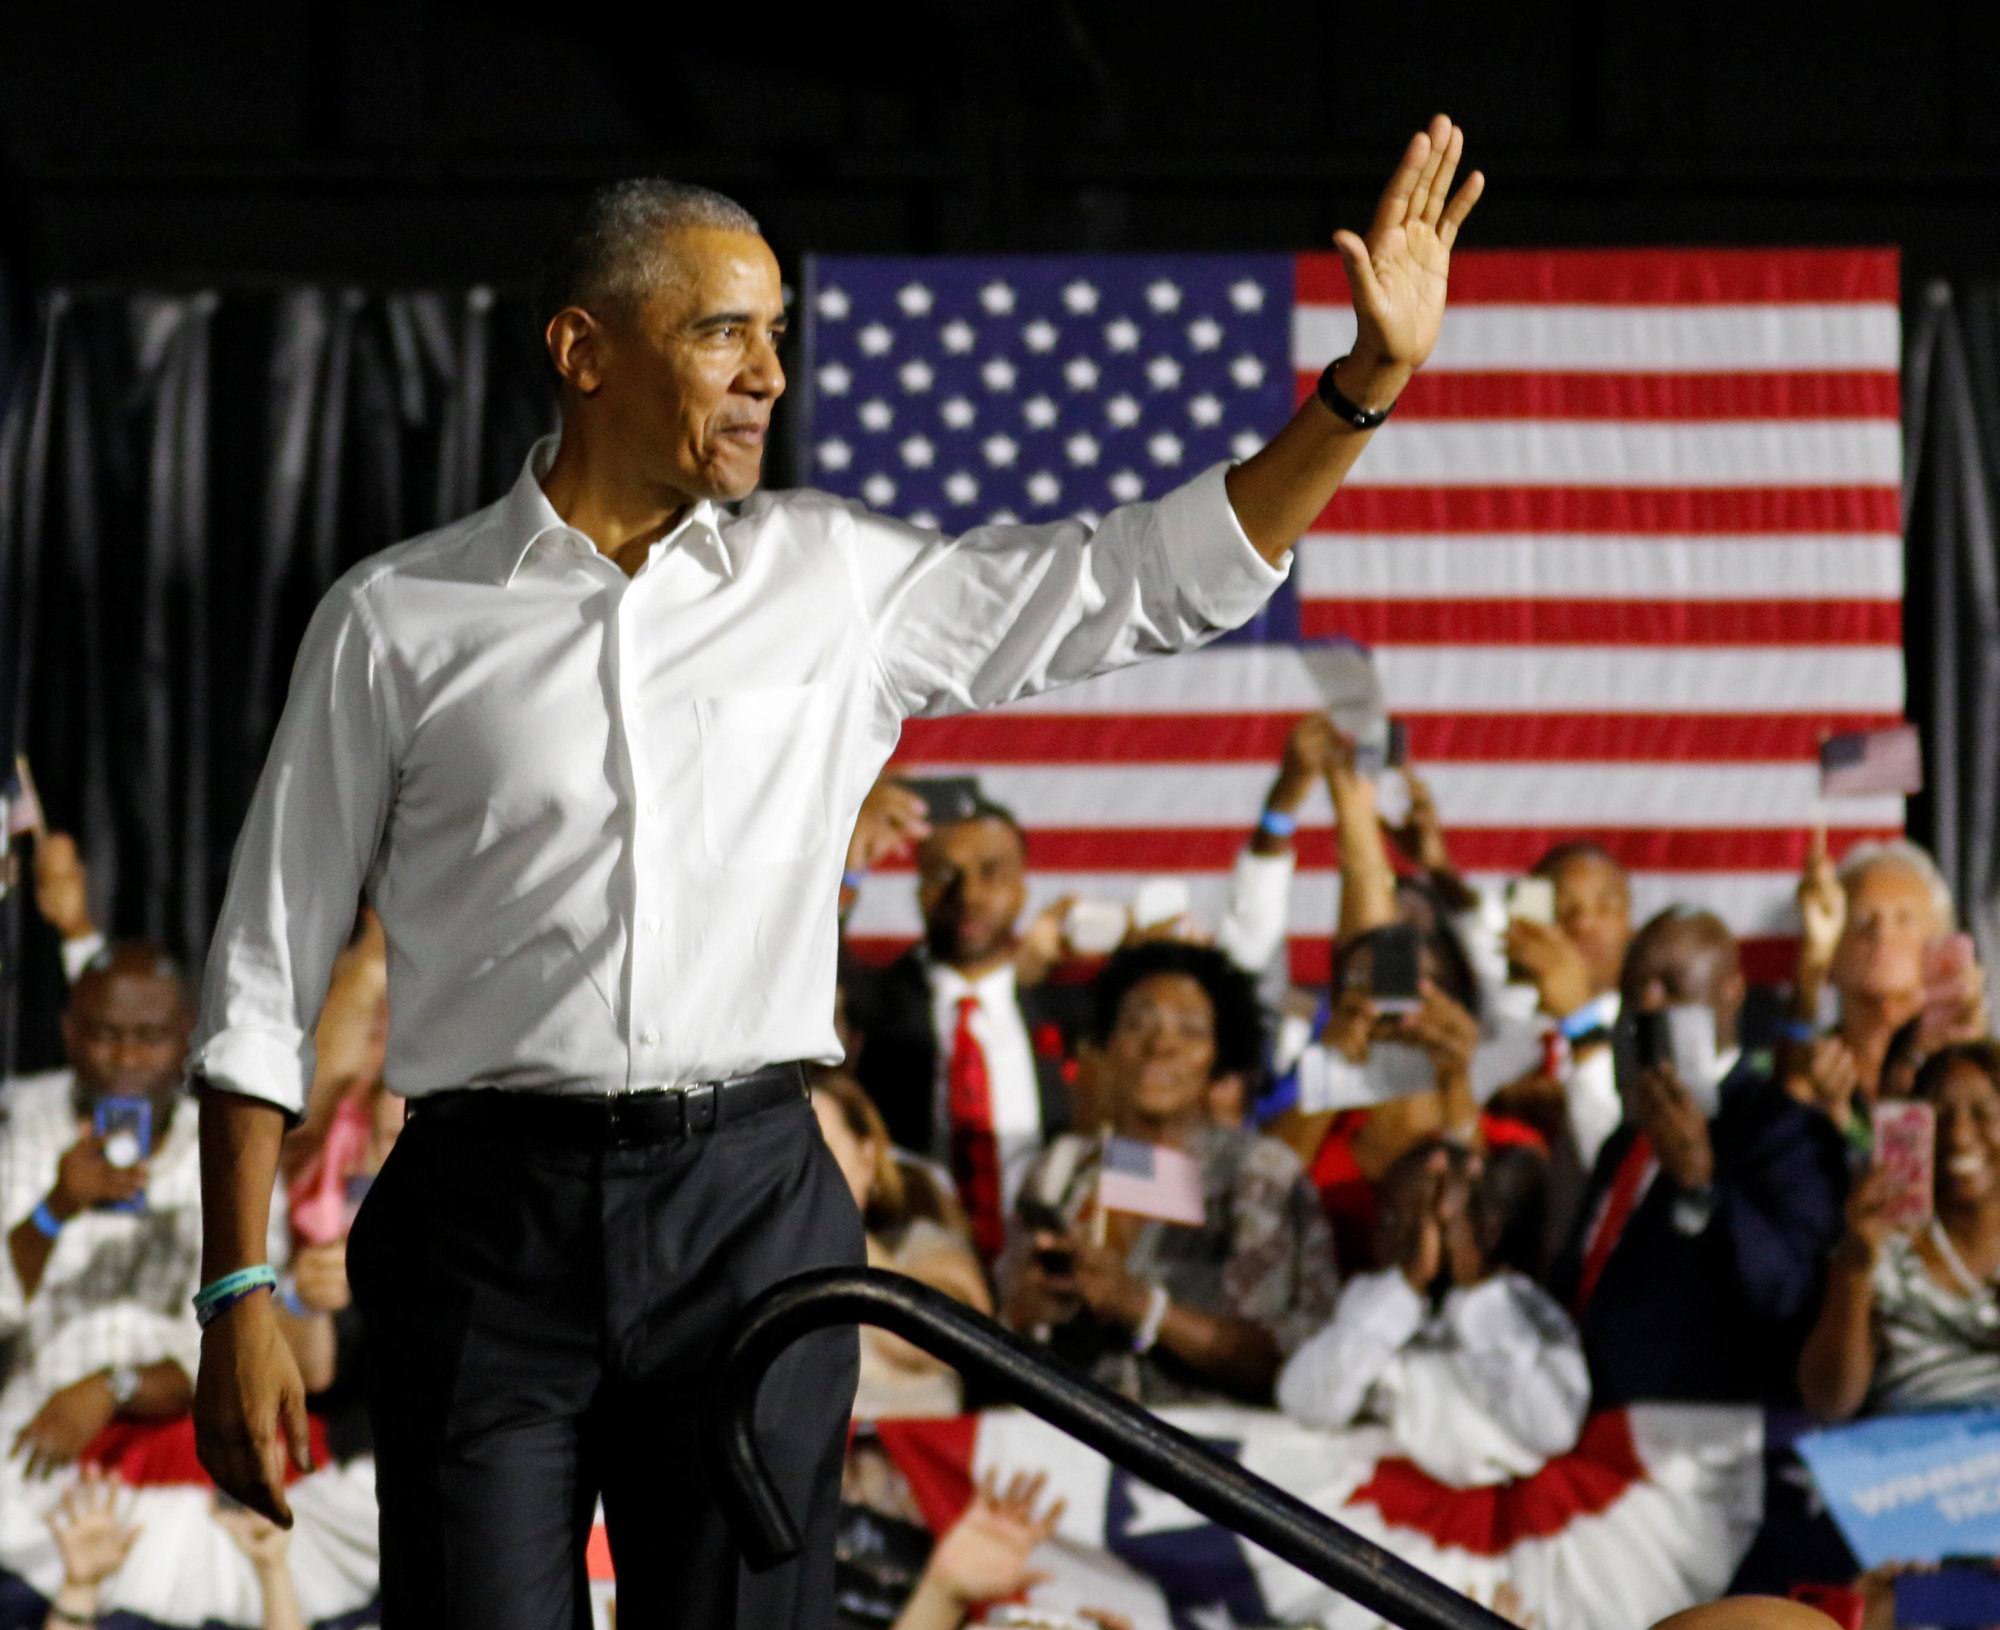 Former U.S. President Barack Obama walks on stage as he campaigns for Democrats, including Florida Sen. Bill Nelson and gubernatorial candidate Andrew Gillum in Miami on Friday.   REUTERS